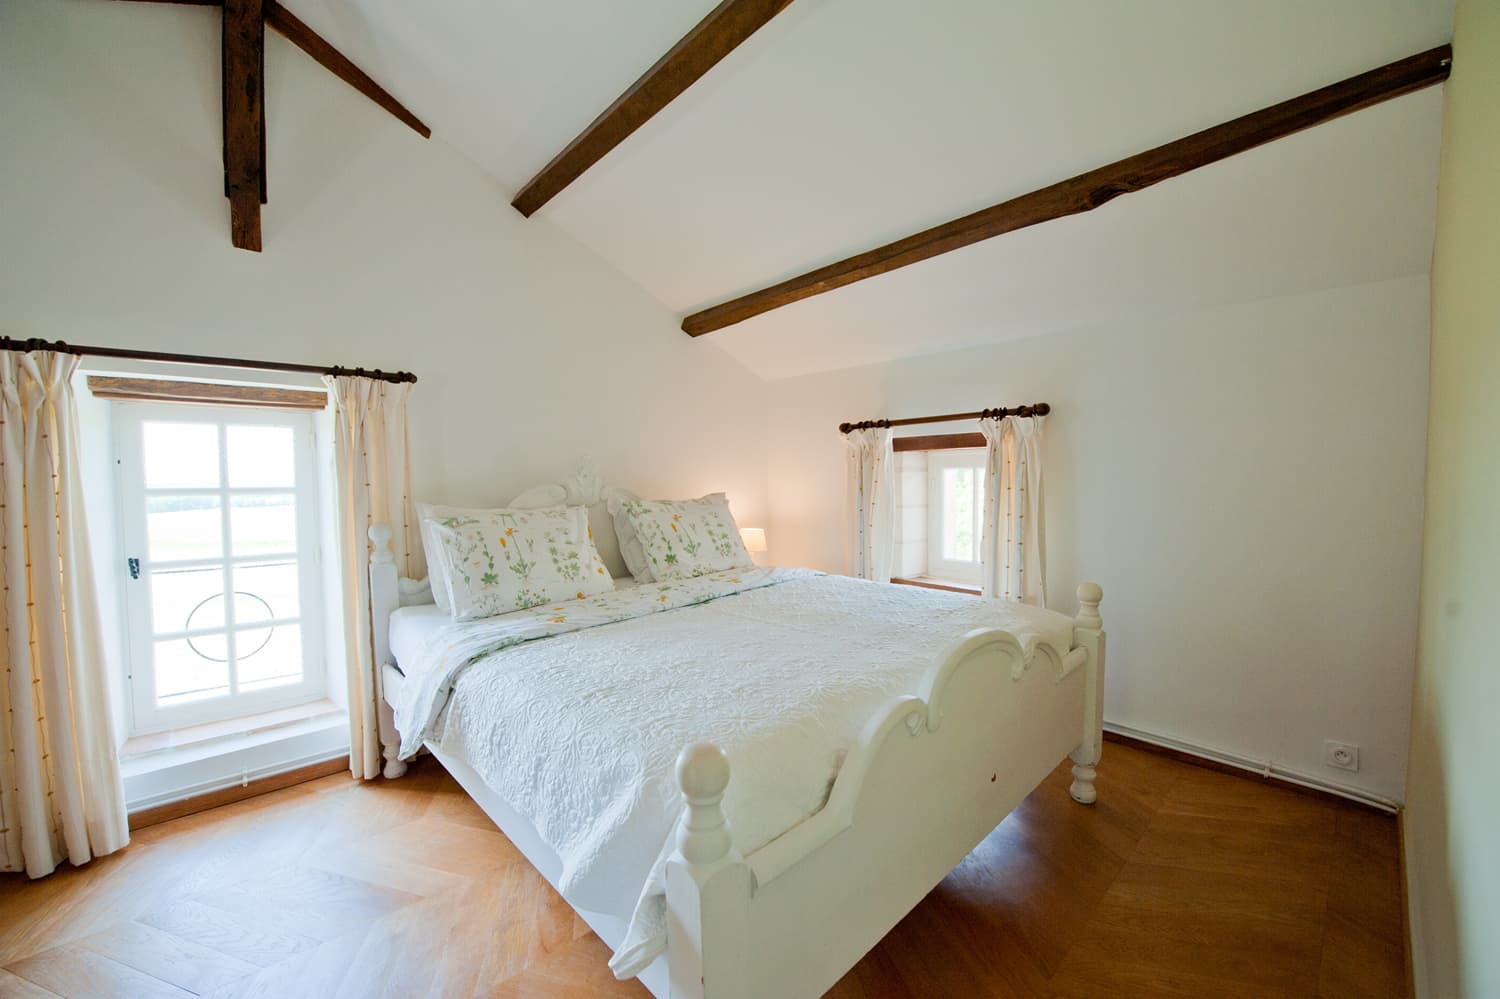 Bedroom in Lot-et-Garonne rental accommodation